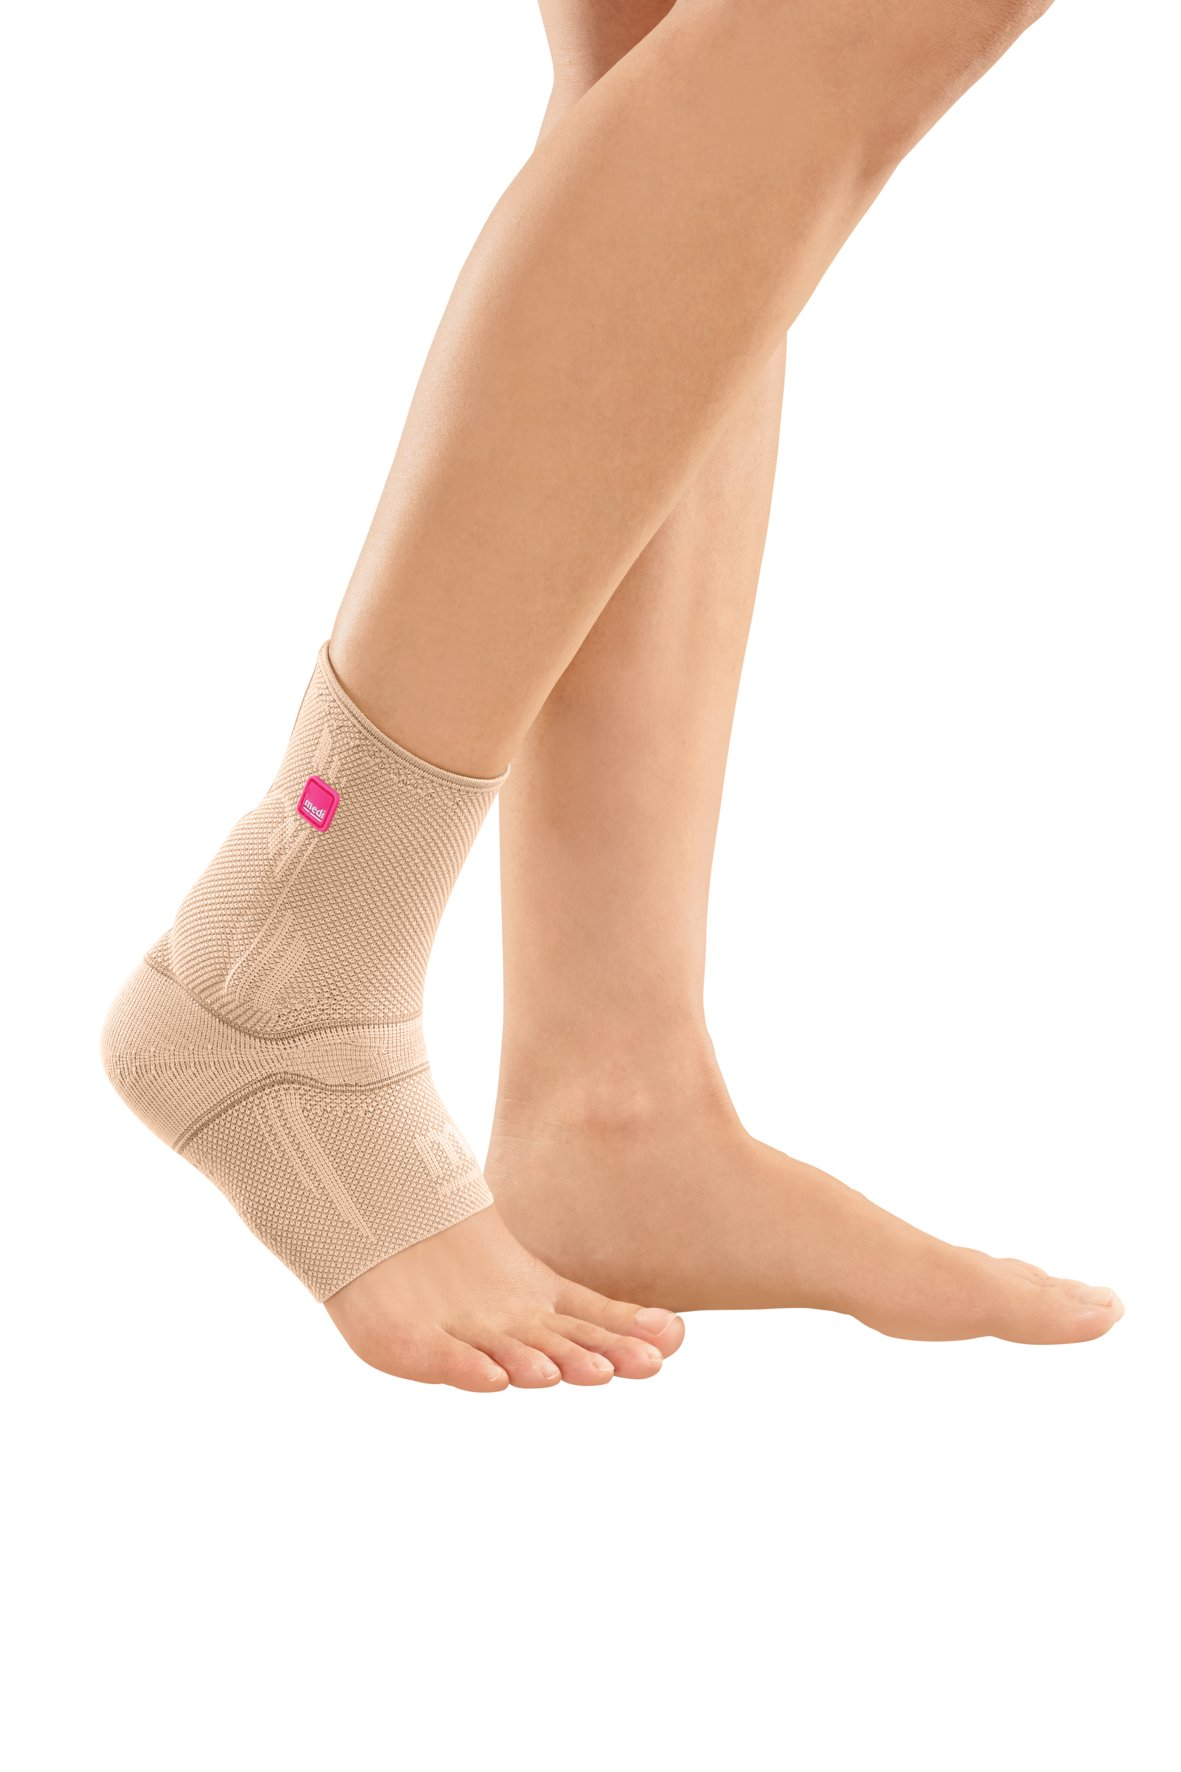 Medi Achimed Knit Ankle Support for Men & Women (Sand) Size IV by Medi Ortho